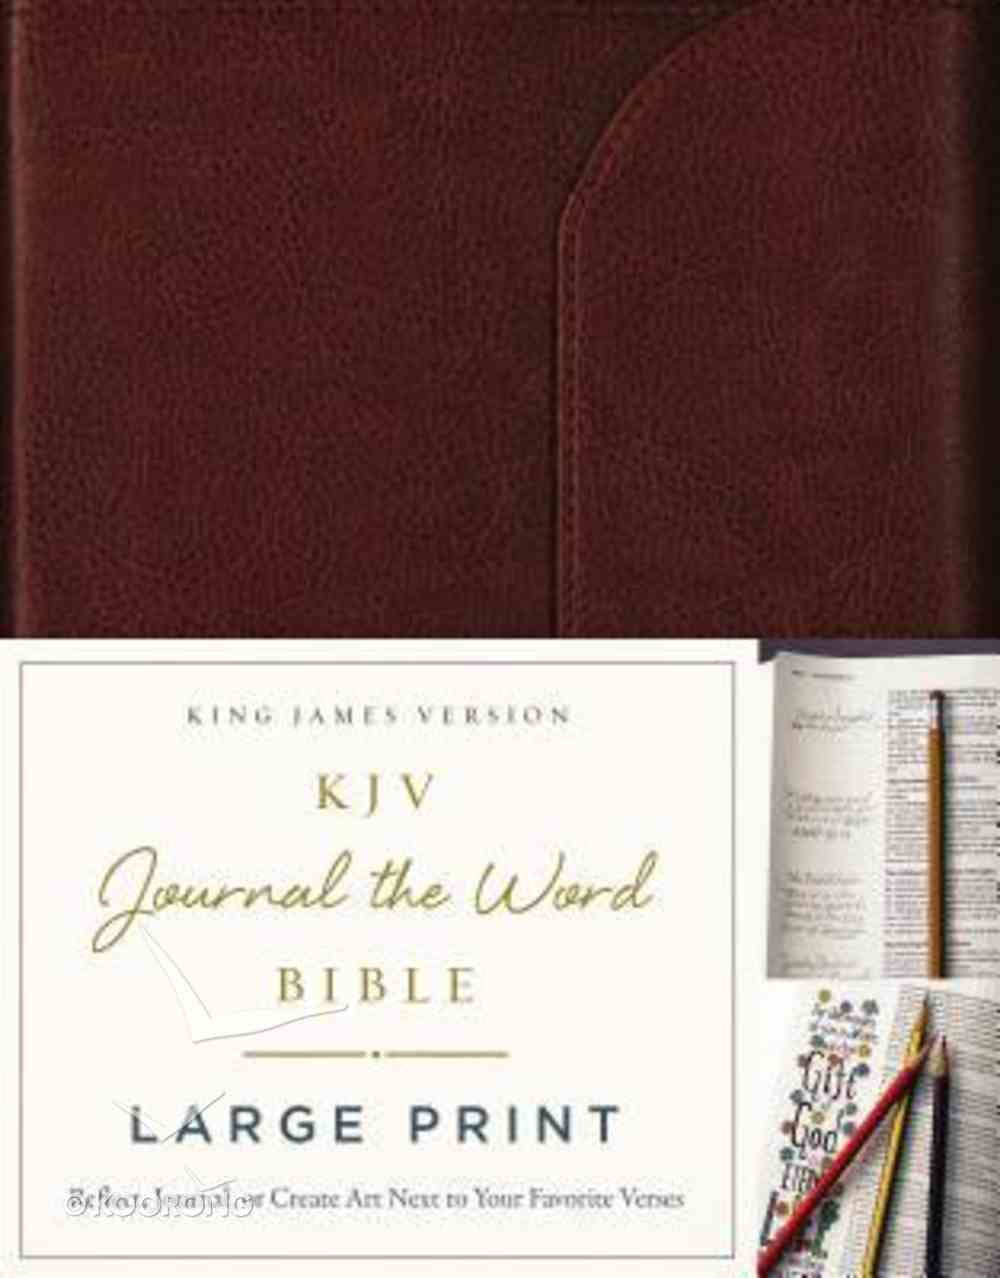 KJV Journal the Word Bible Large Print Brown (Red Letter Edition) Genuine Leather